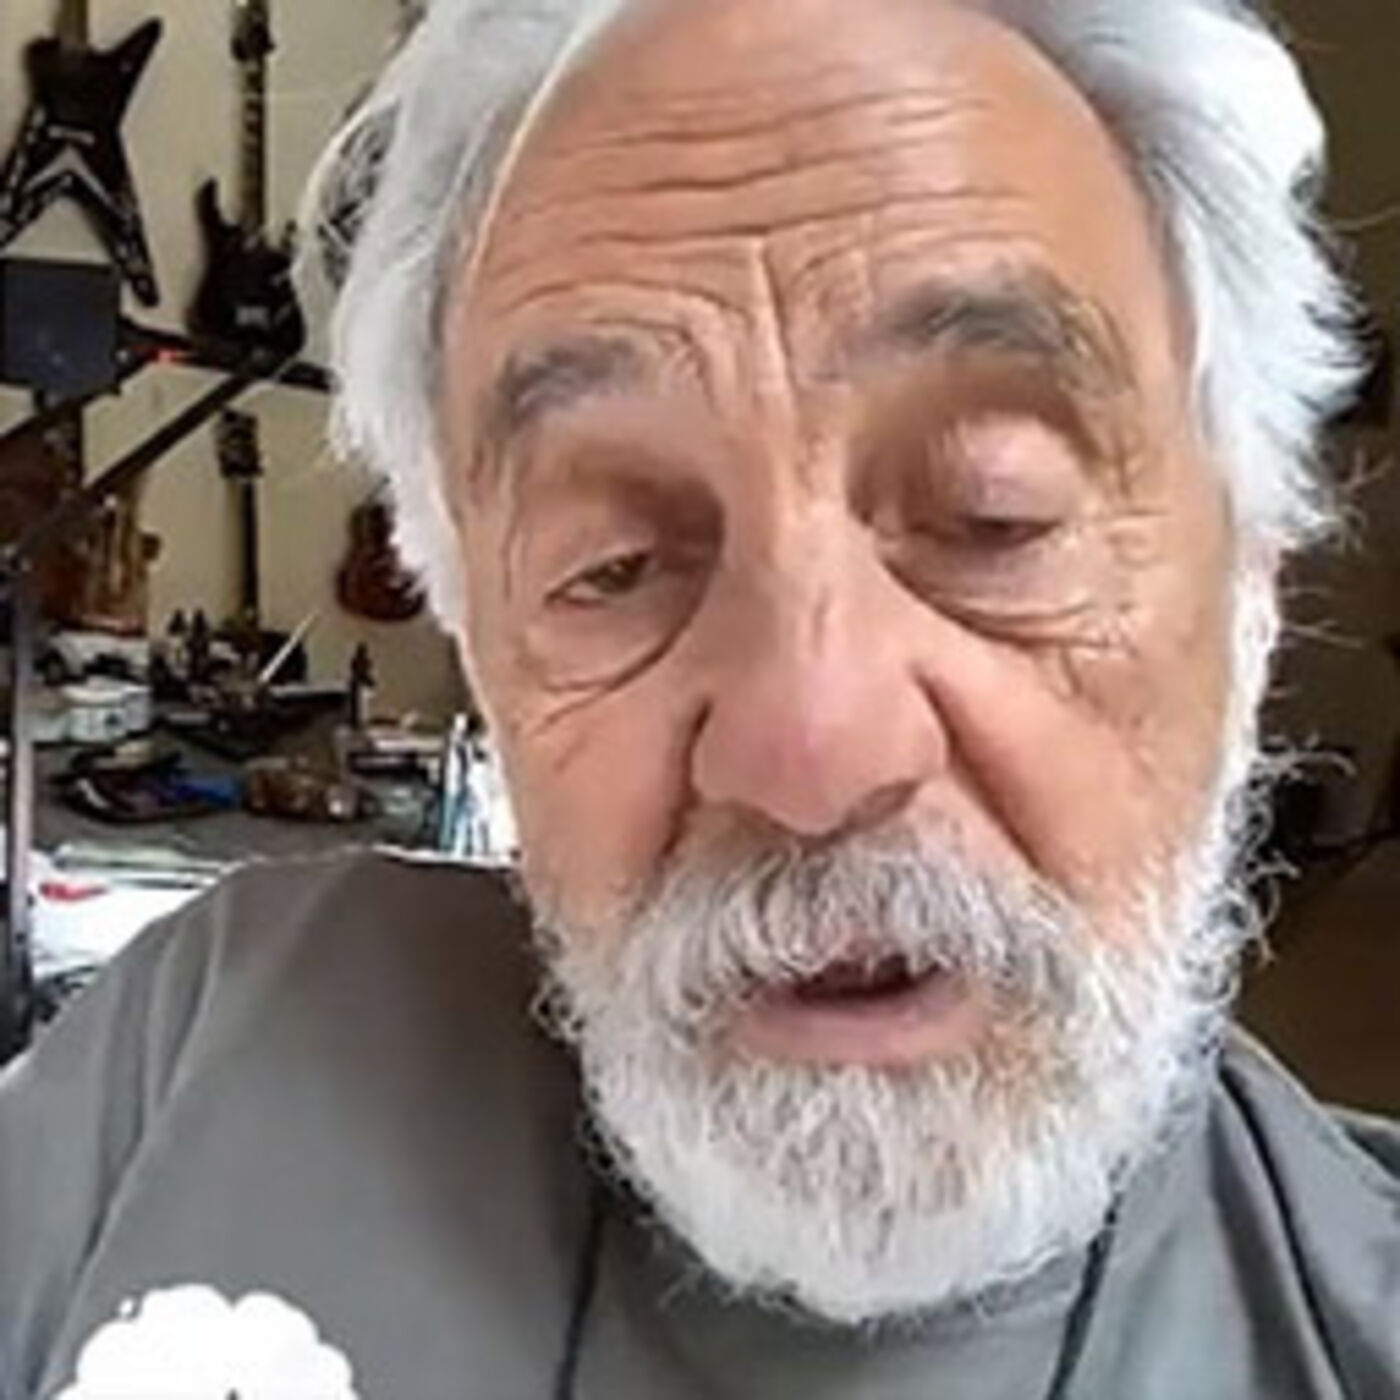 #33 - Tommy Chong Tells All - Exclusive Interview - Deluxe Edition #cheechandchong #tommychong #thc #weed